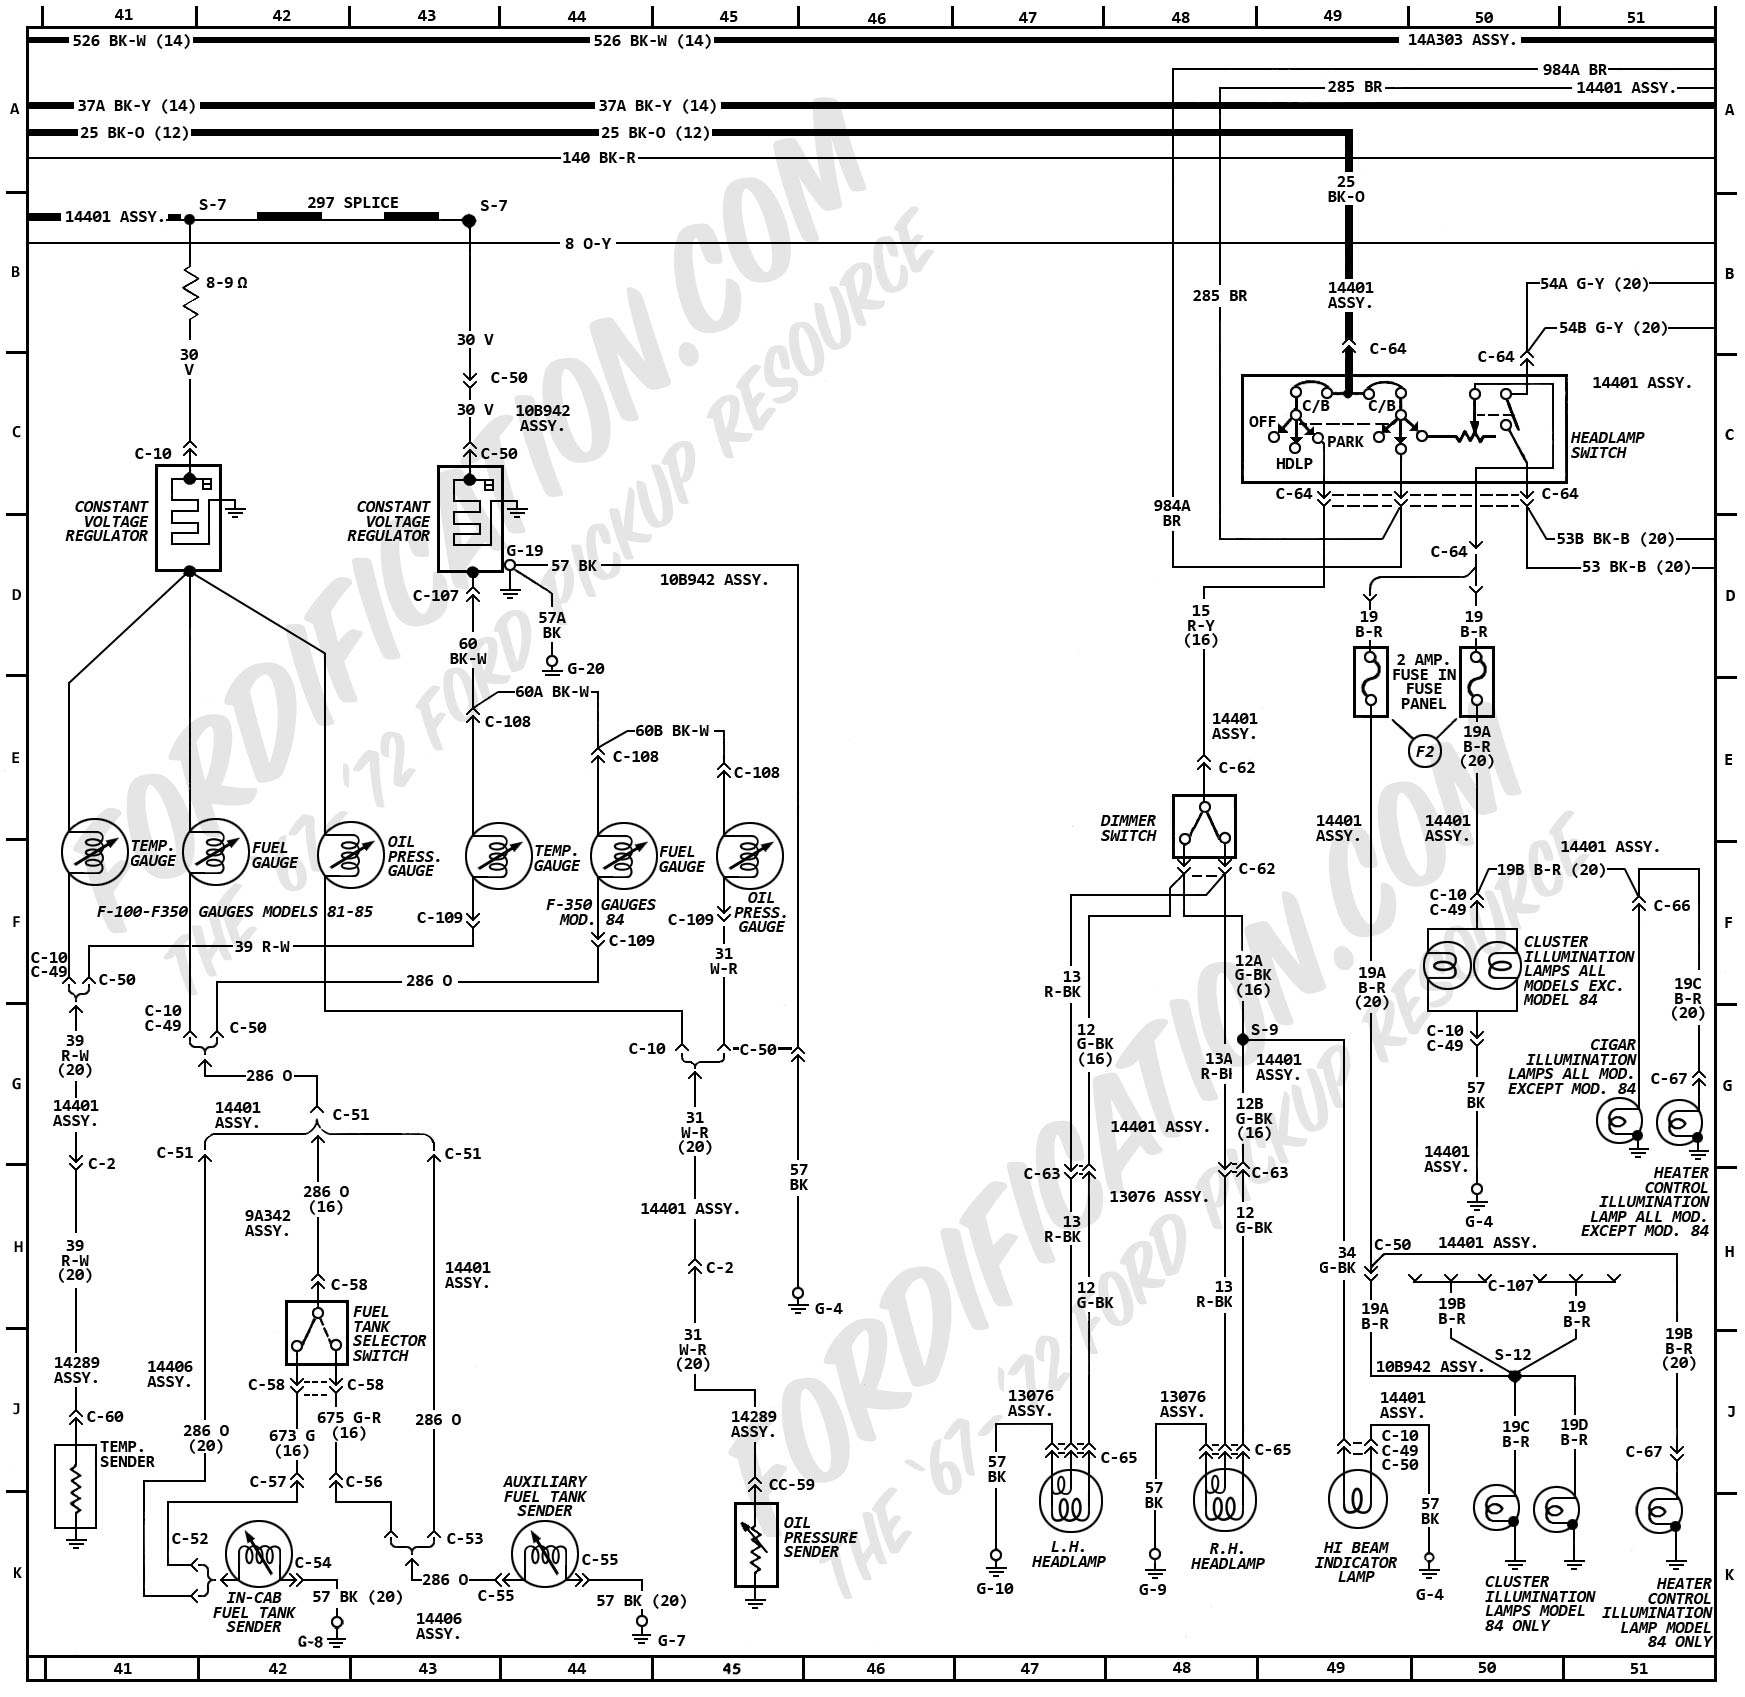 1996 ford f700 wiring schematic wiring diagram for ford l8000 1996 ford l8000 wiring schematic #10